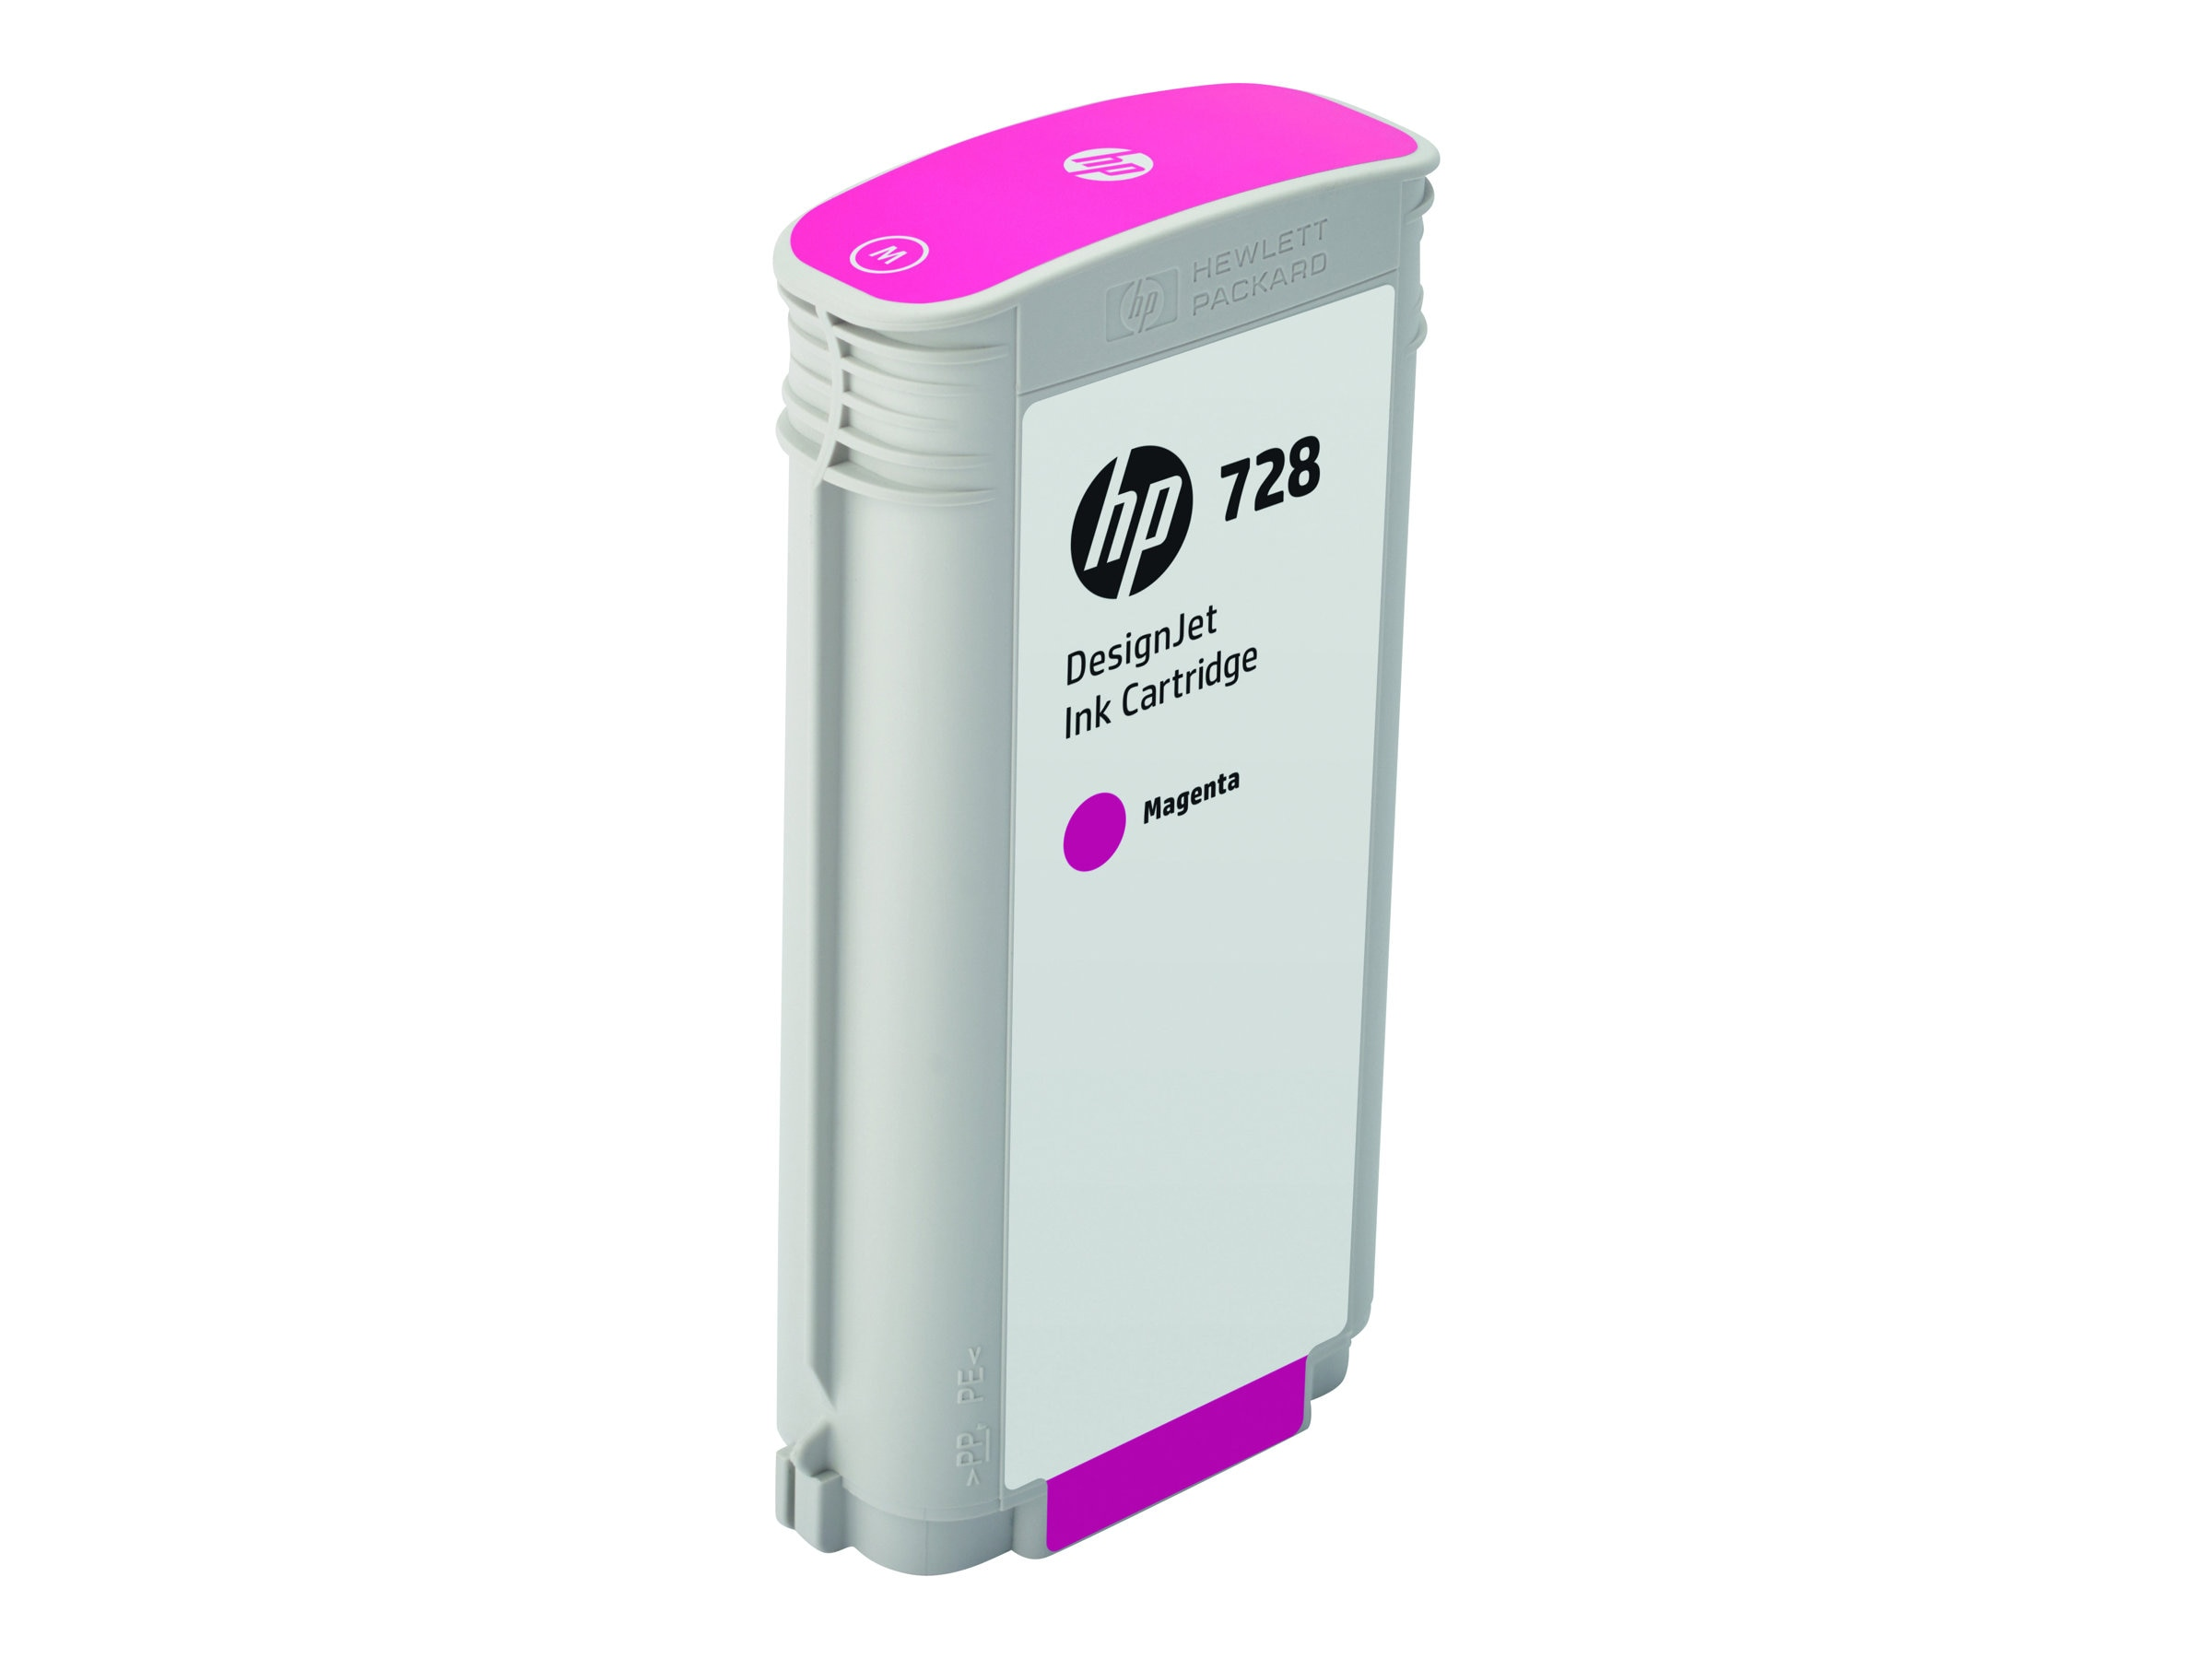 HP 728 (F9J66A) 130ml Magenta Designjet Ink Cartridge for HP DesignJet T730 & T830 Series